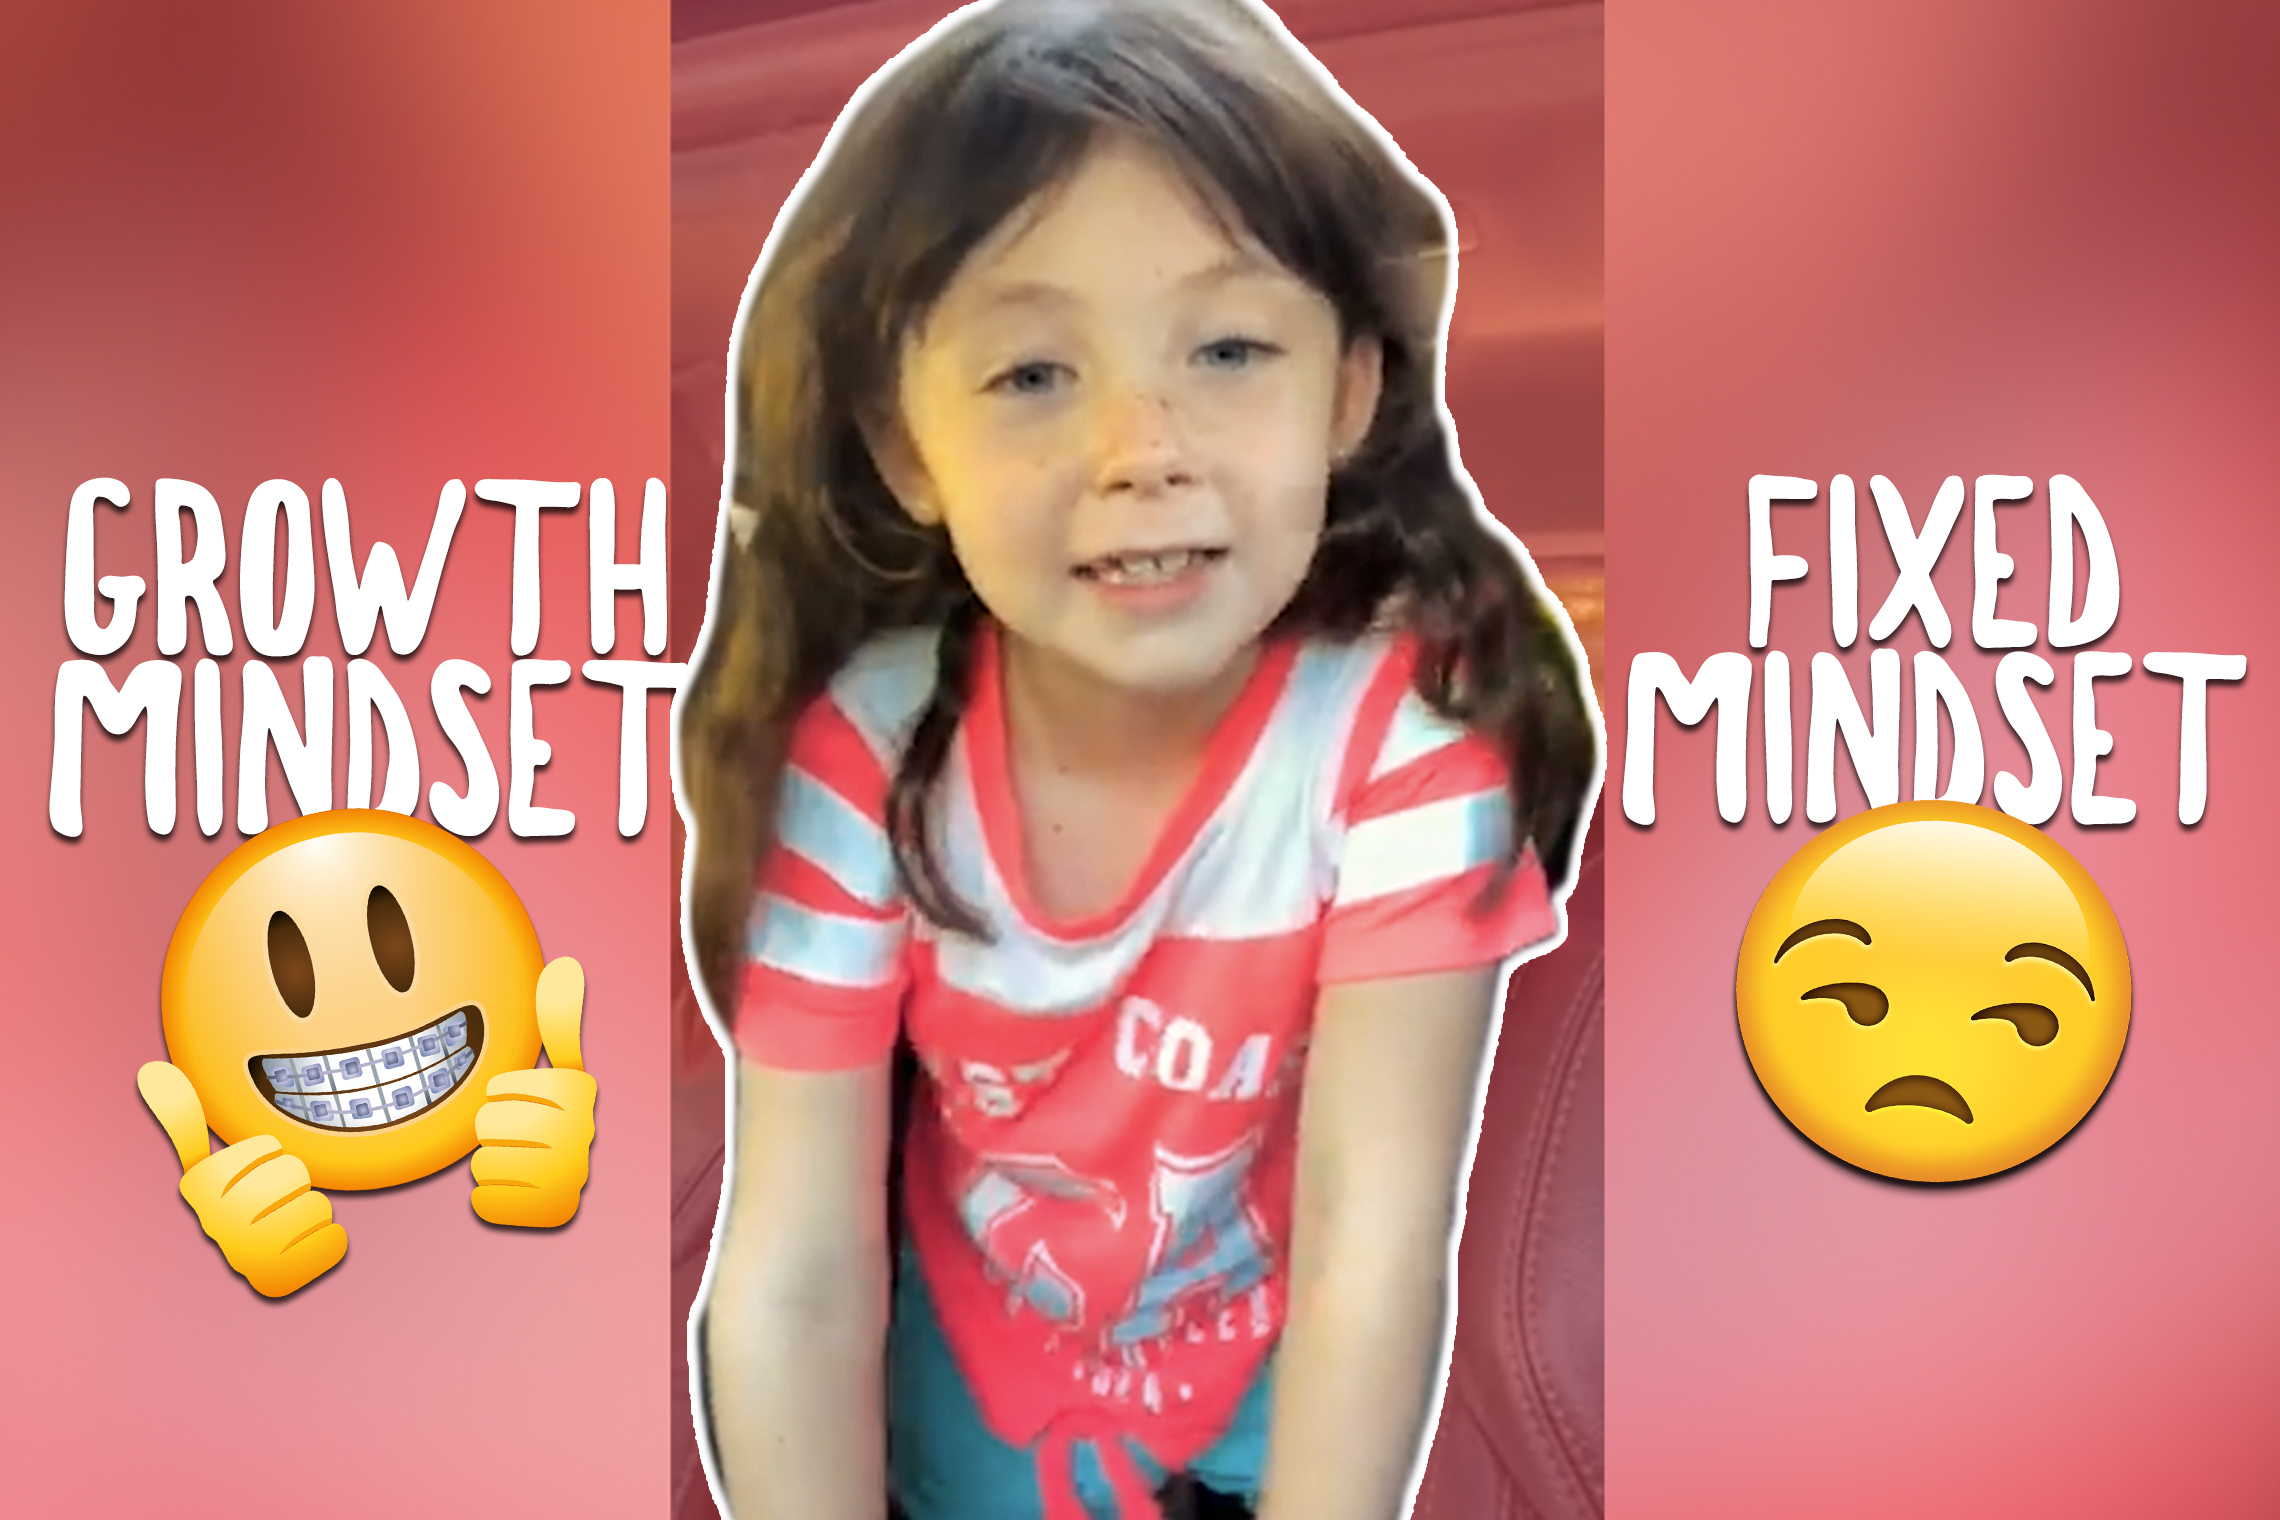 A 2nd Grader Explains Growth vs. Fixed Mindset | SchoolRubric